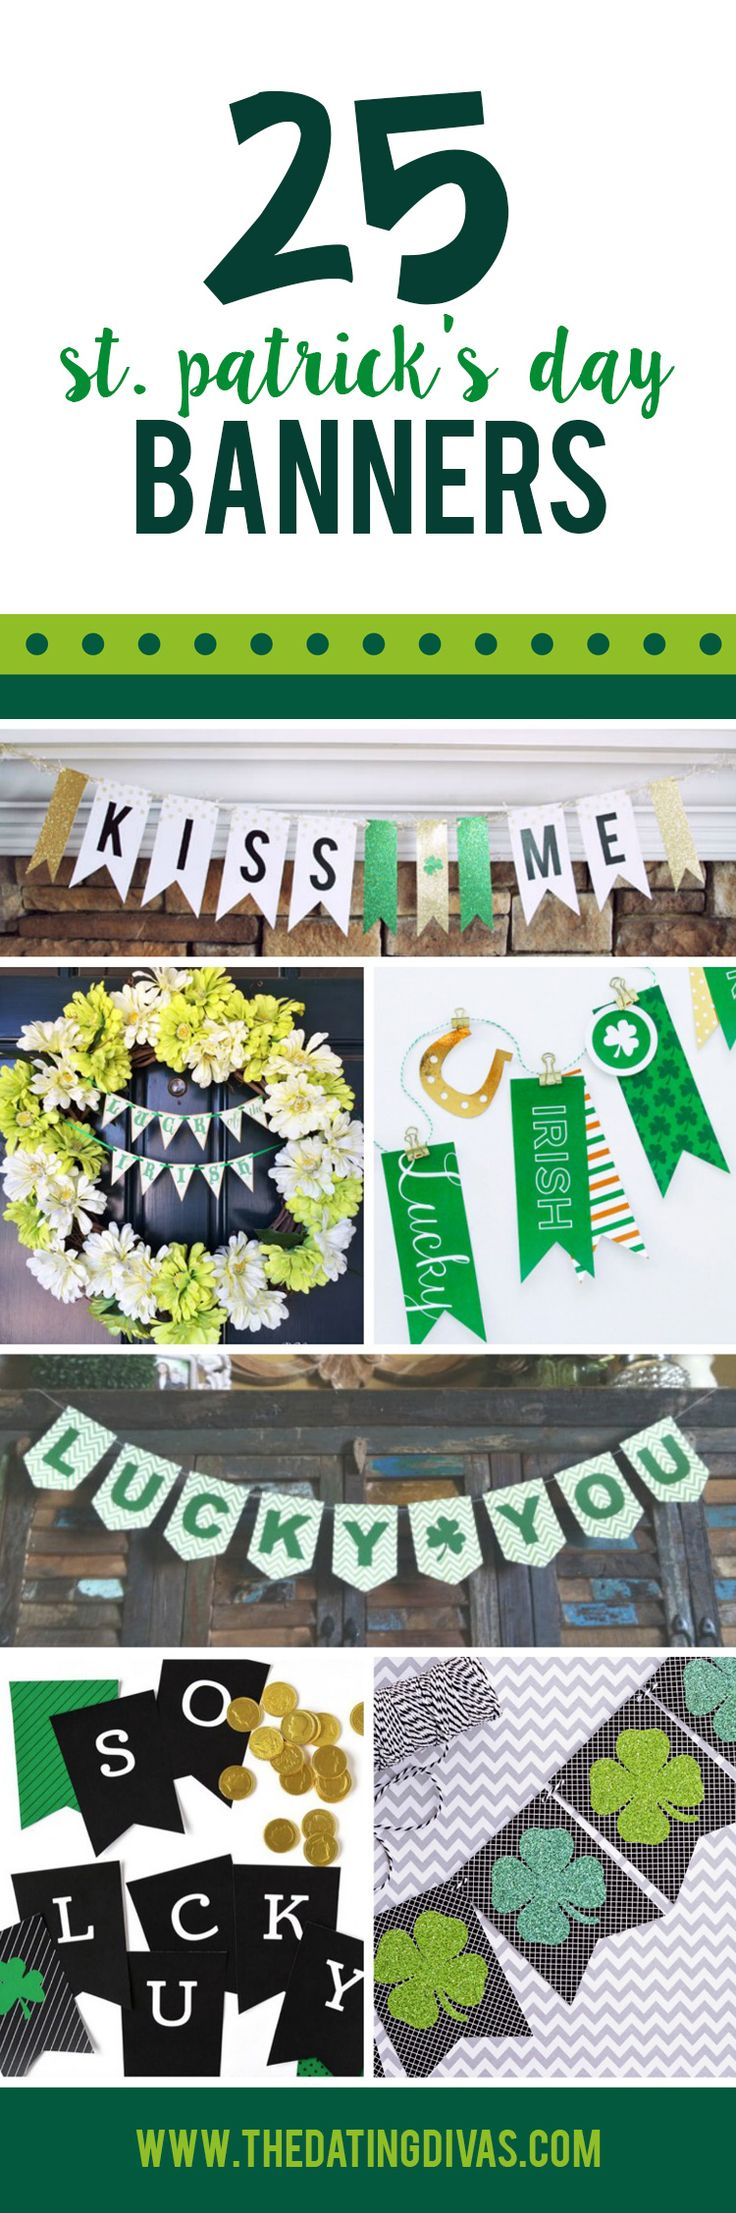 St. Patrick's Day Printable Banners - quick and easy DIY decor!